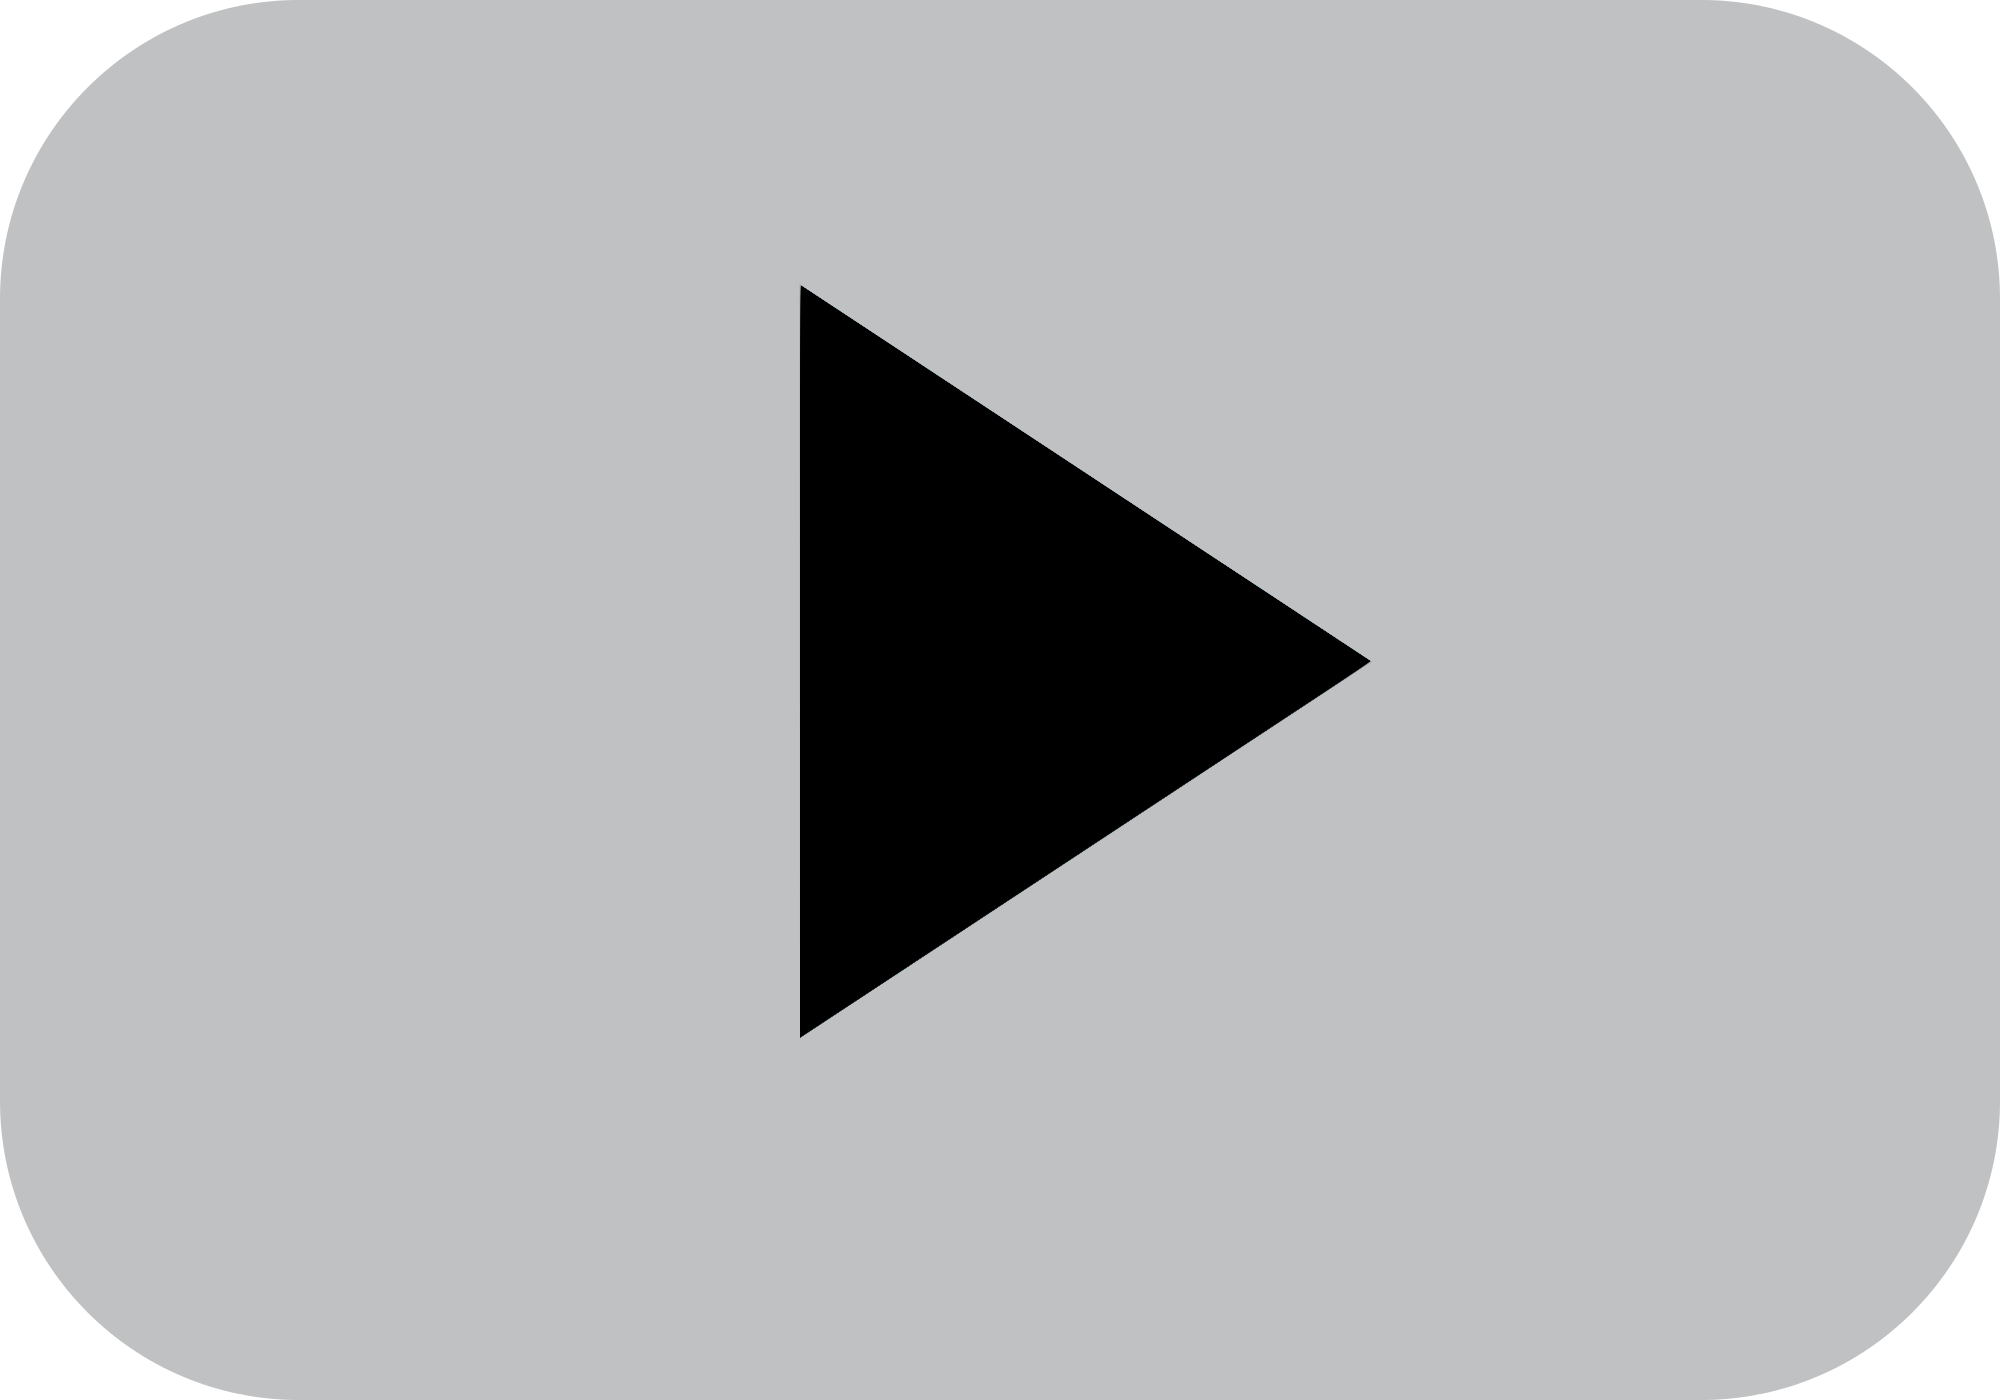 File:YouTube Silver Play Button.png.